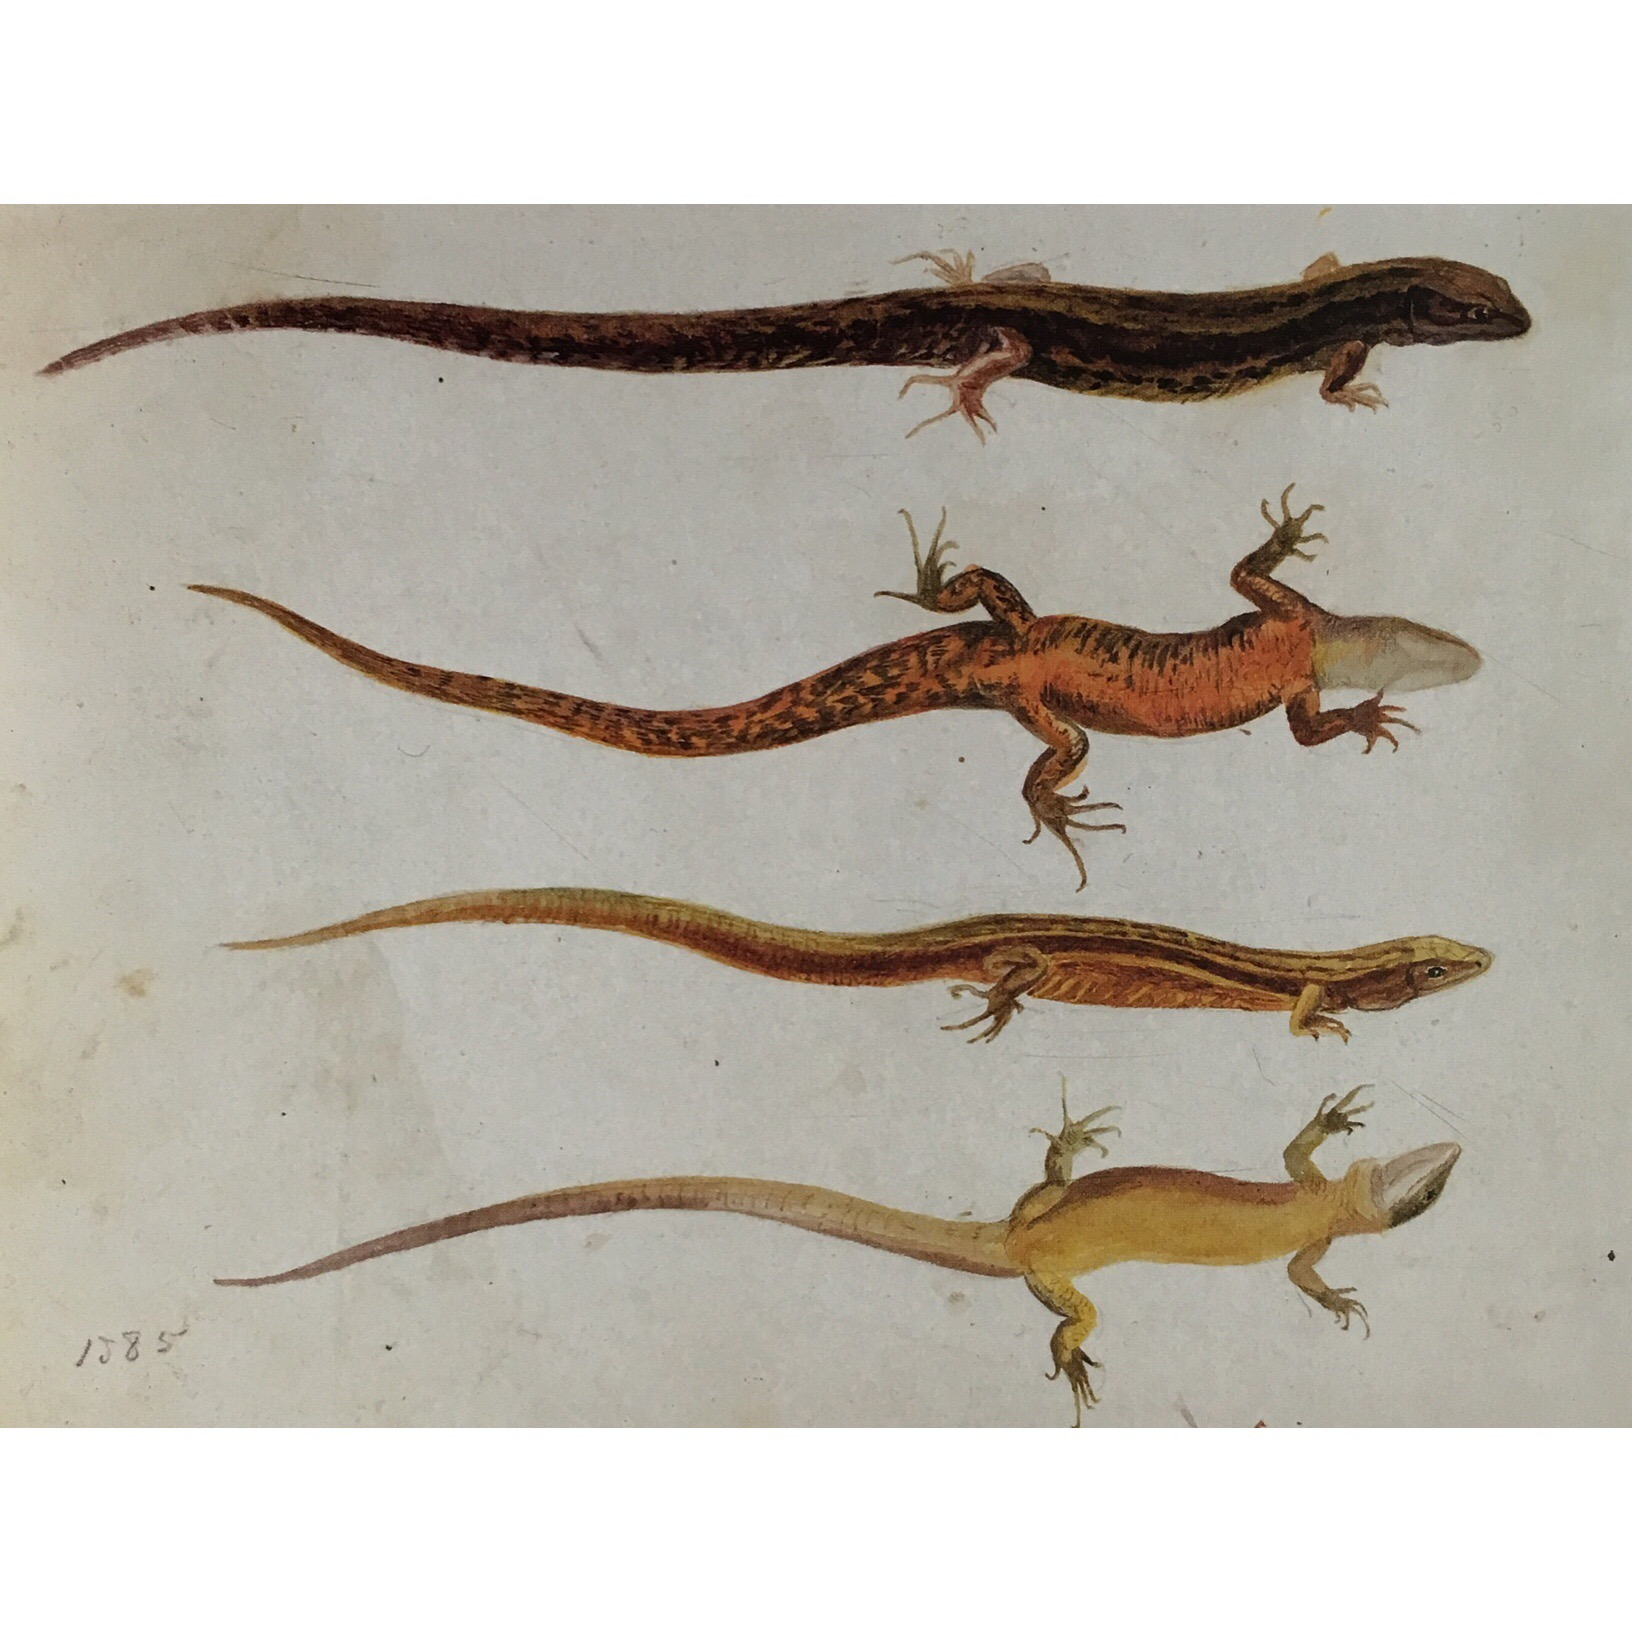 watercolor study of lizards, age 19